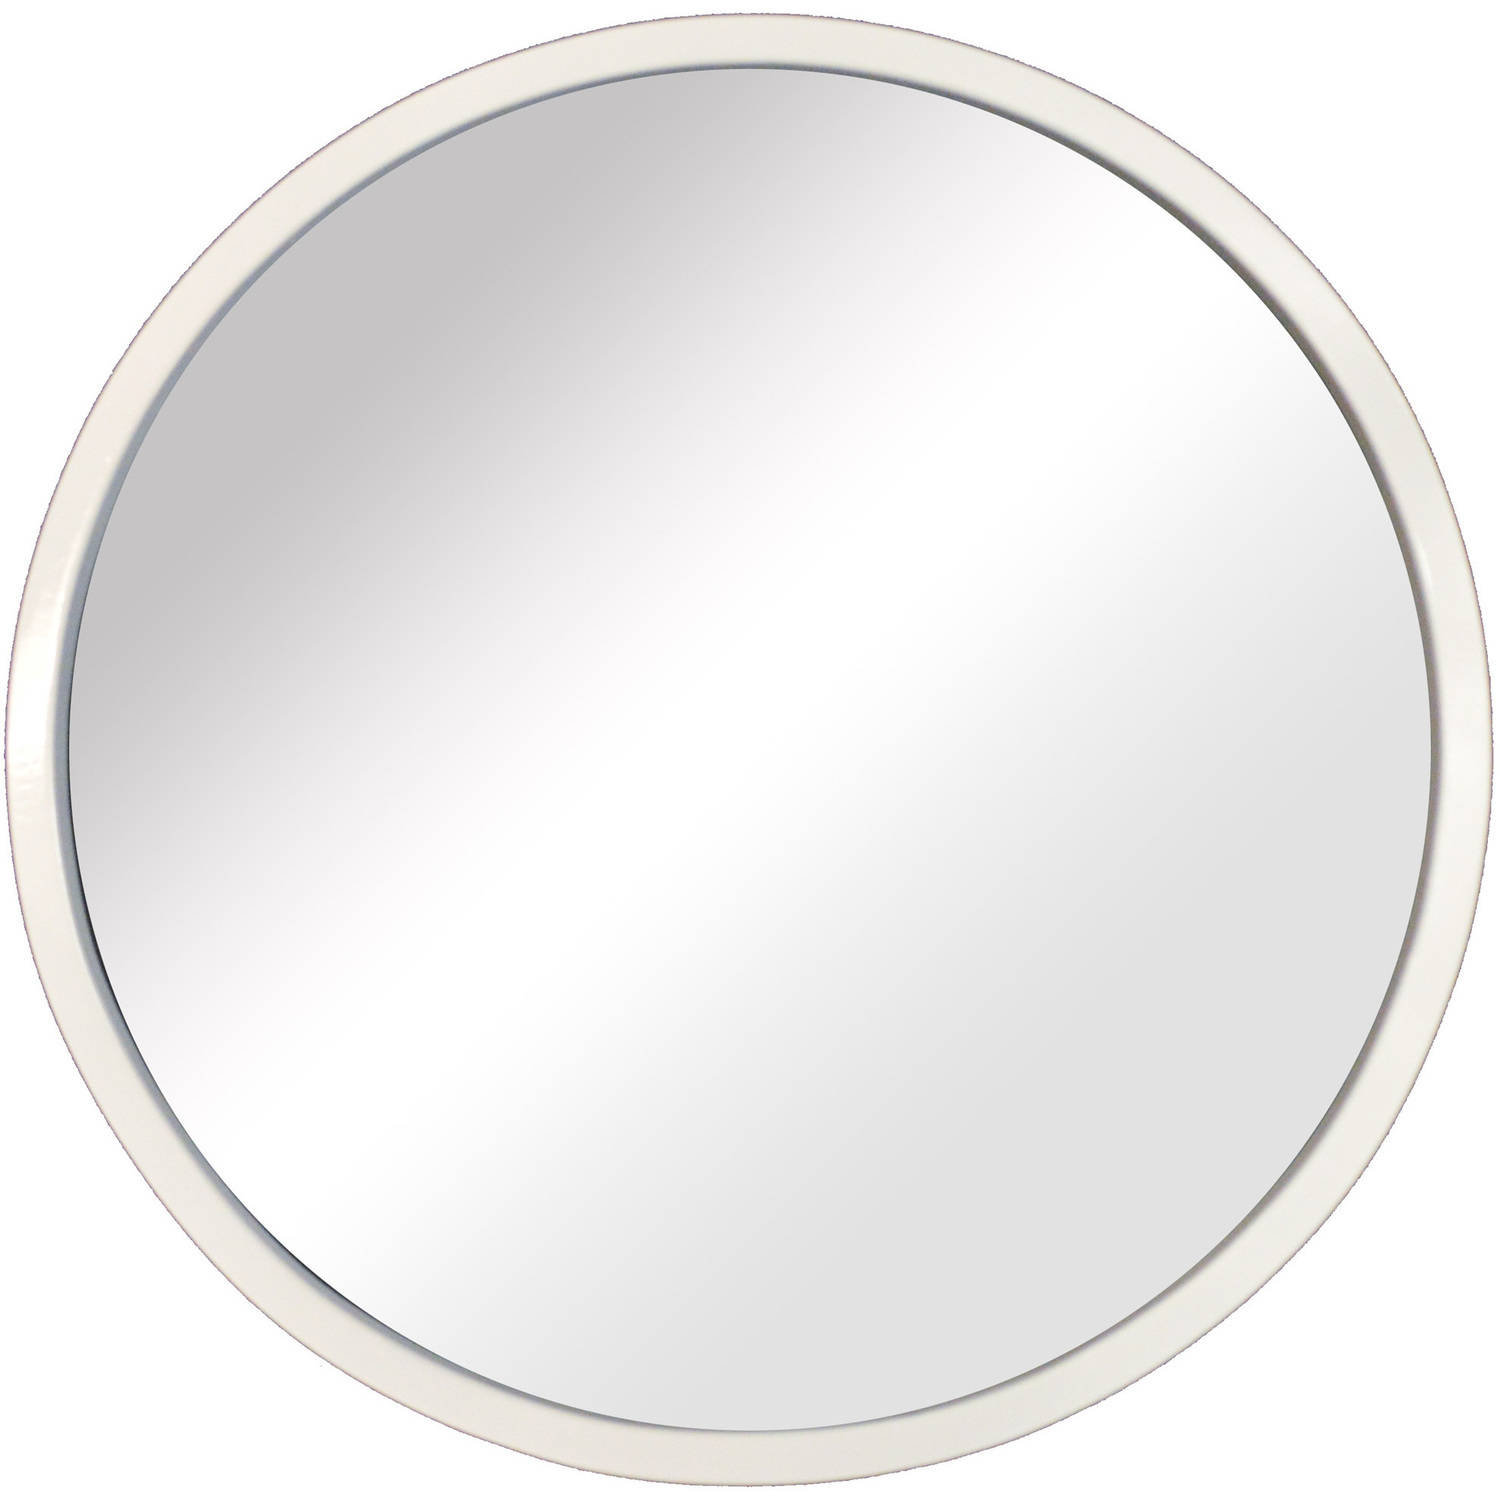 The Novogratz, Reflection Round Mirror In White, 14.375x14.375 Decorative Wall Mirror by PTM Images